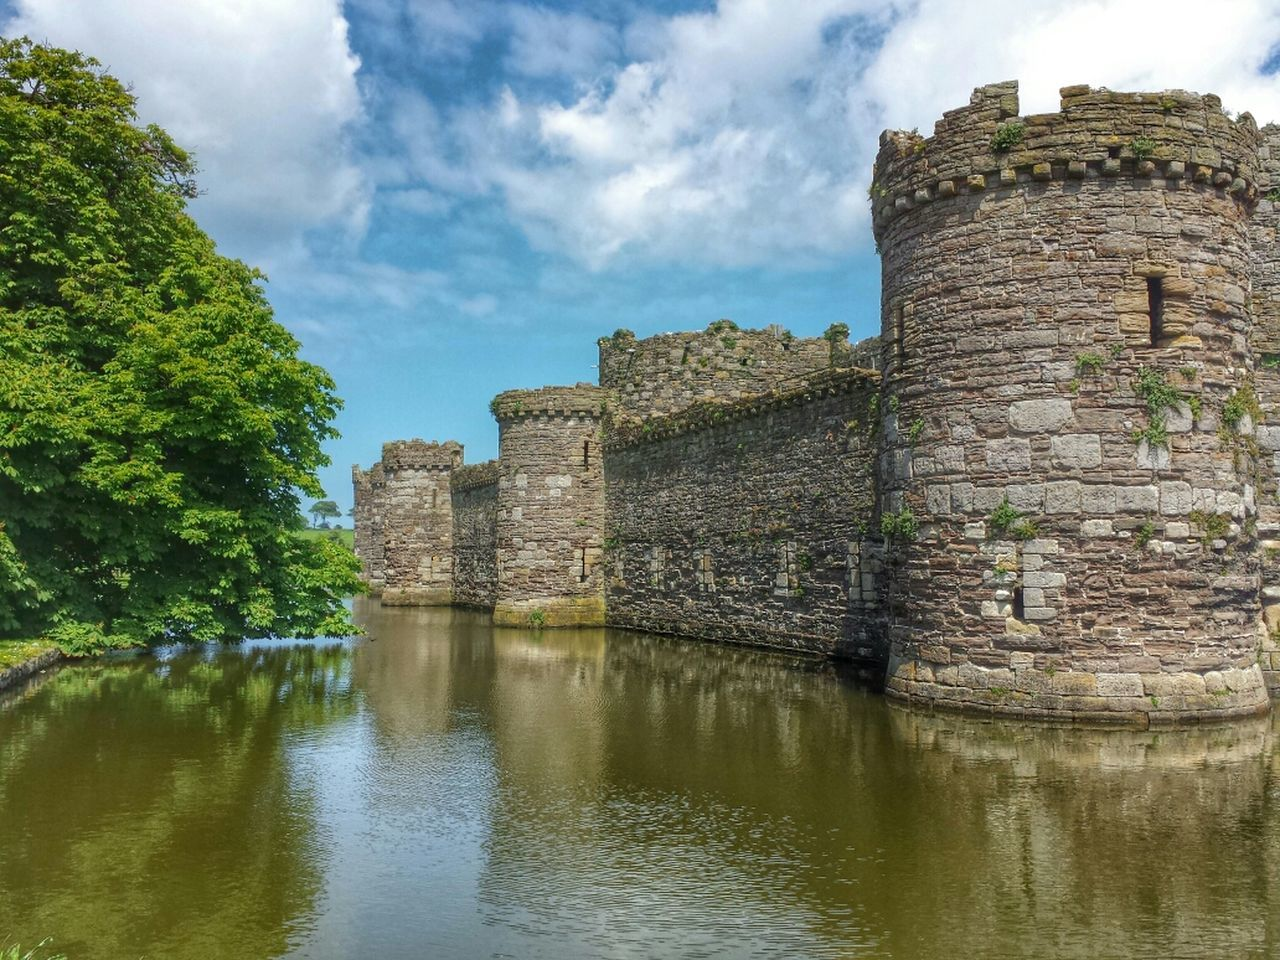 beaumaris castle, unfinished ...edward the first... Landscape_Collection EyeEm Best Shots Hdr_Collection Streamzoofamily No People Architecture Ancient Civilization Built Structure Travel Destinations Cloud - Sky